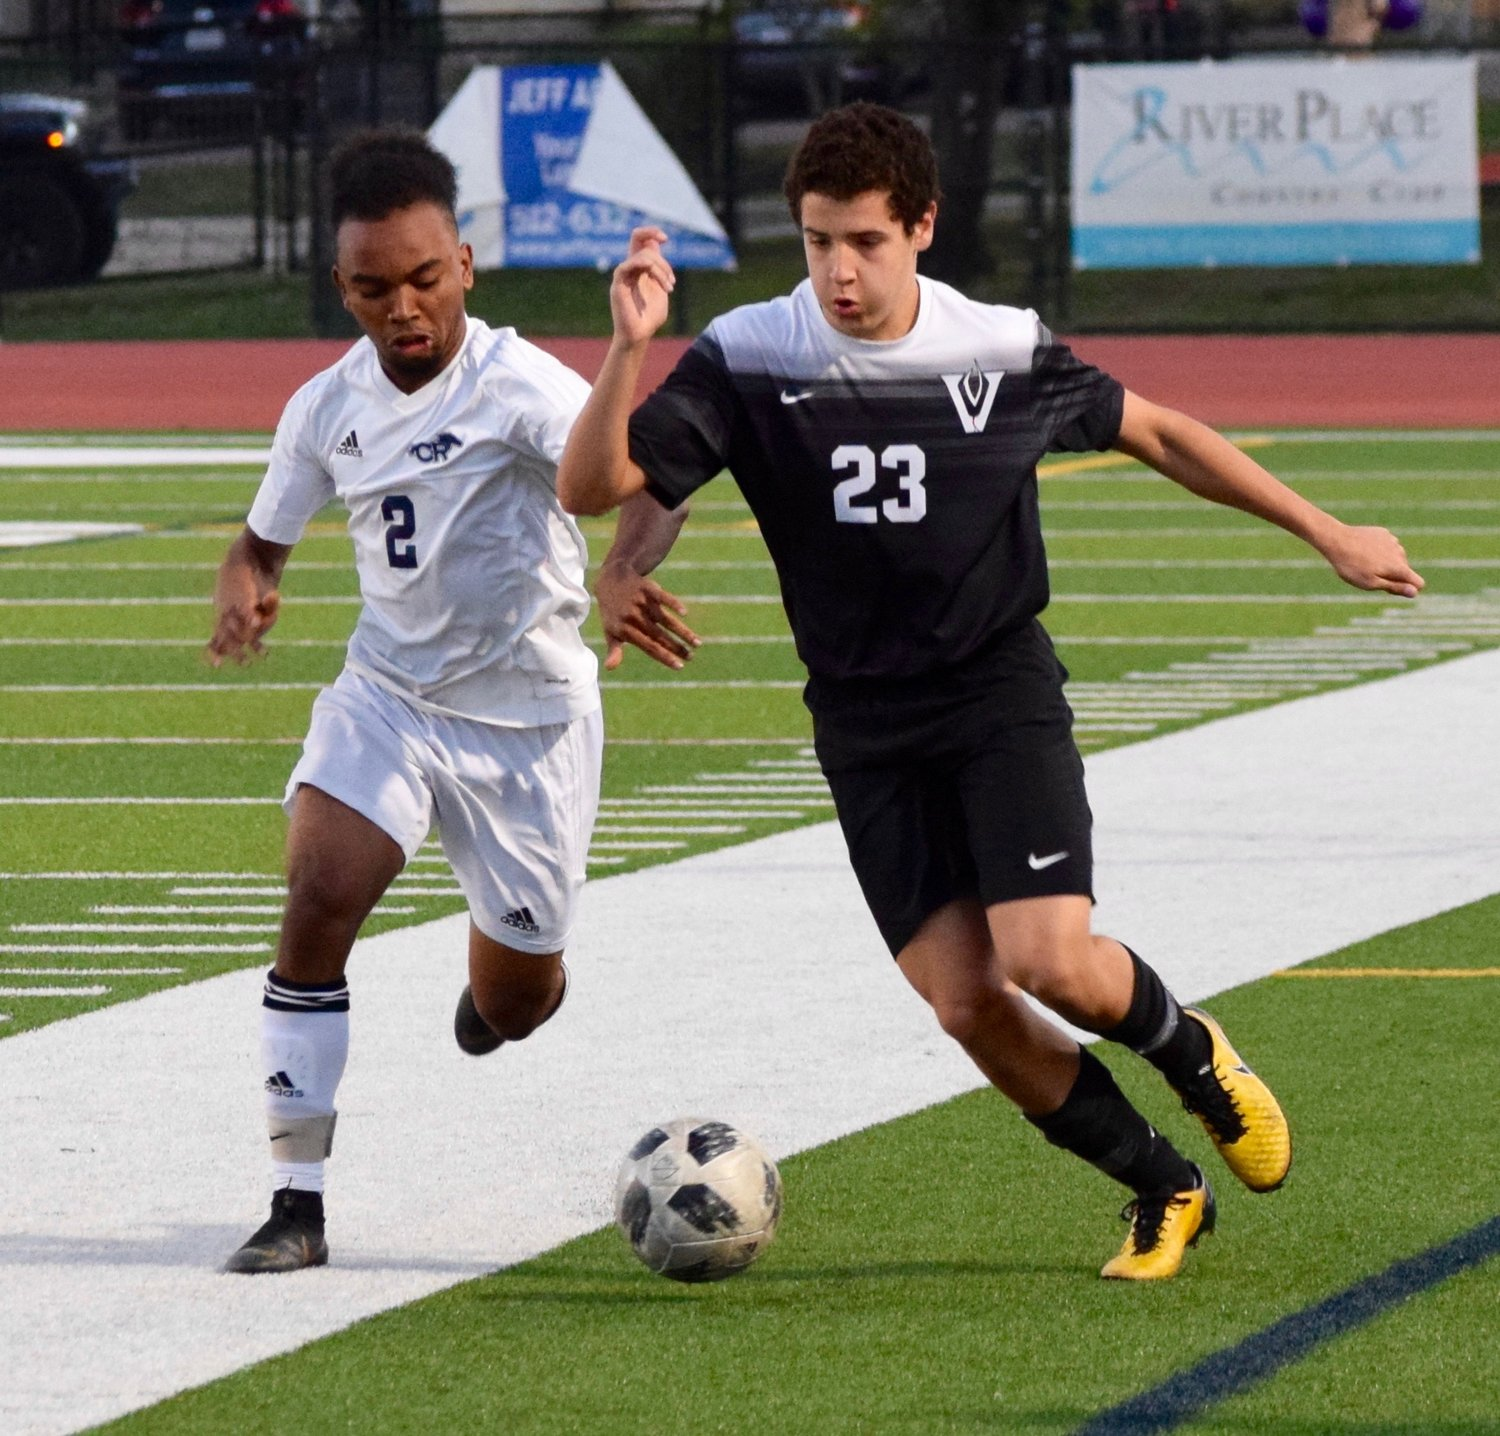 Vandegrift's Patrick Donnellan was named to the District 13-6A second-team. The Vipers lost to Cy Ranch in the first round of the playoffs.